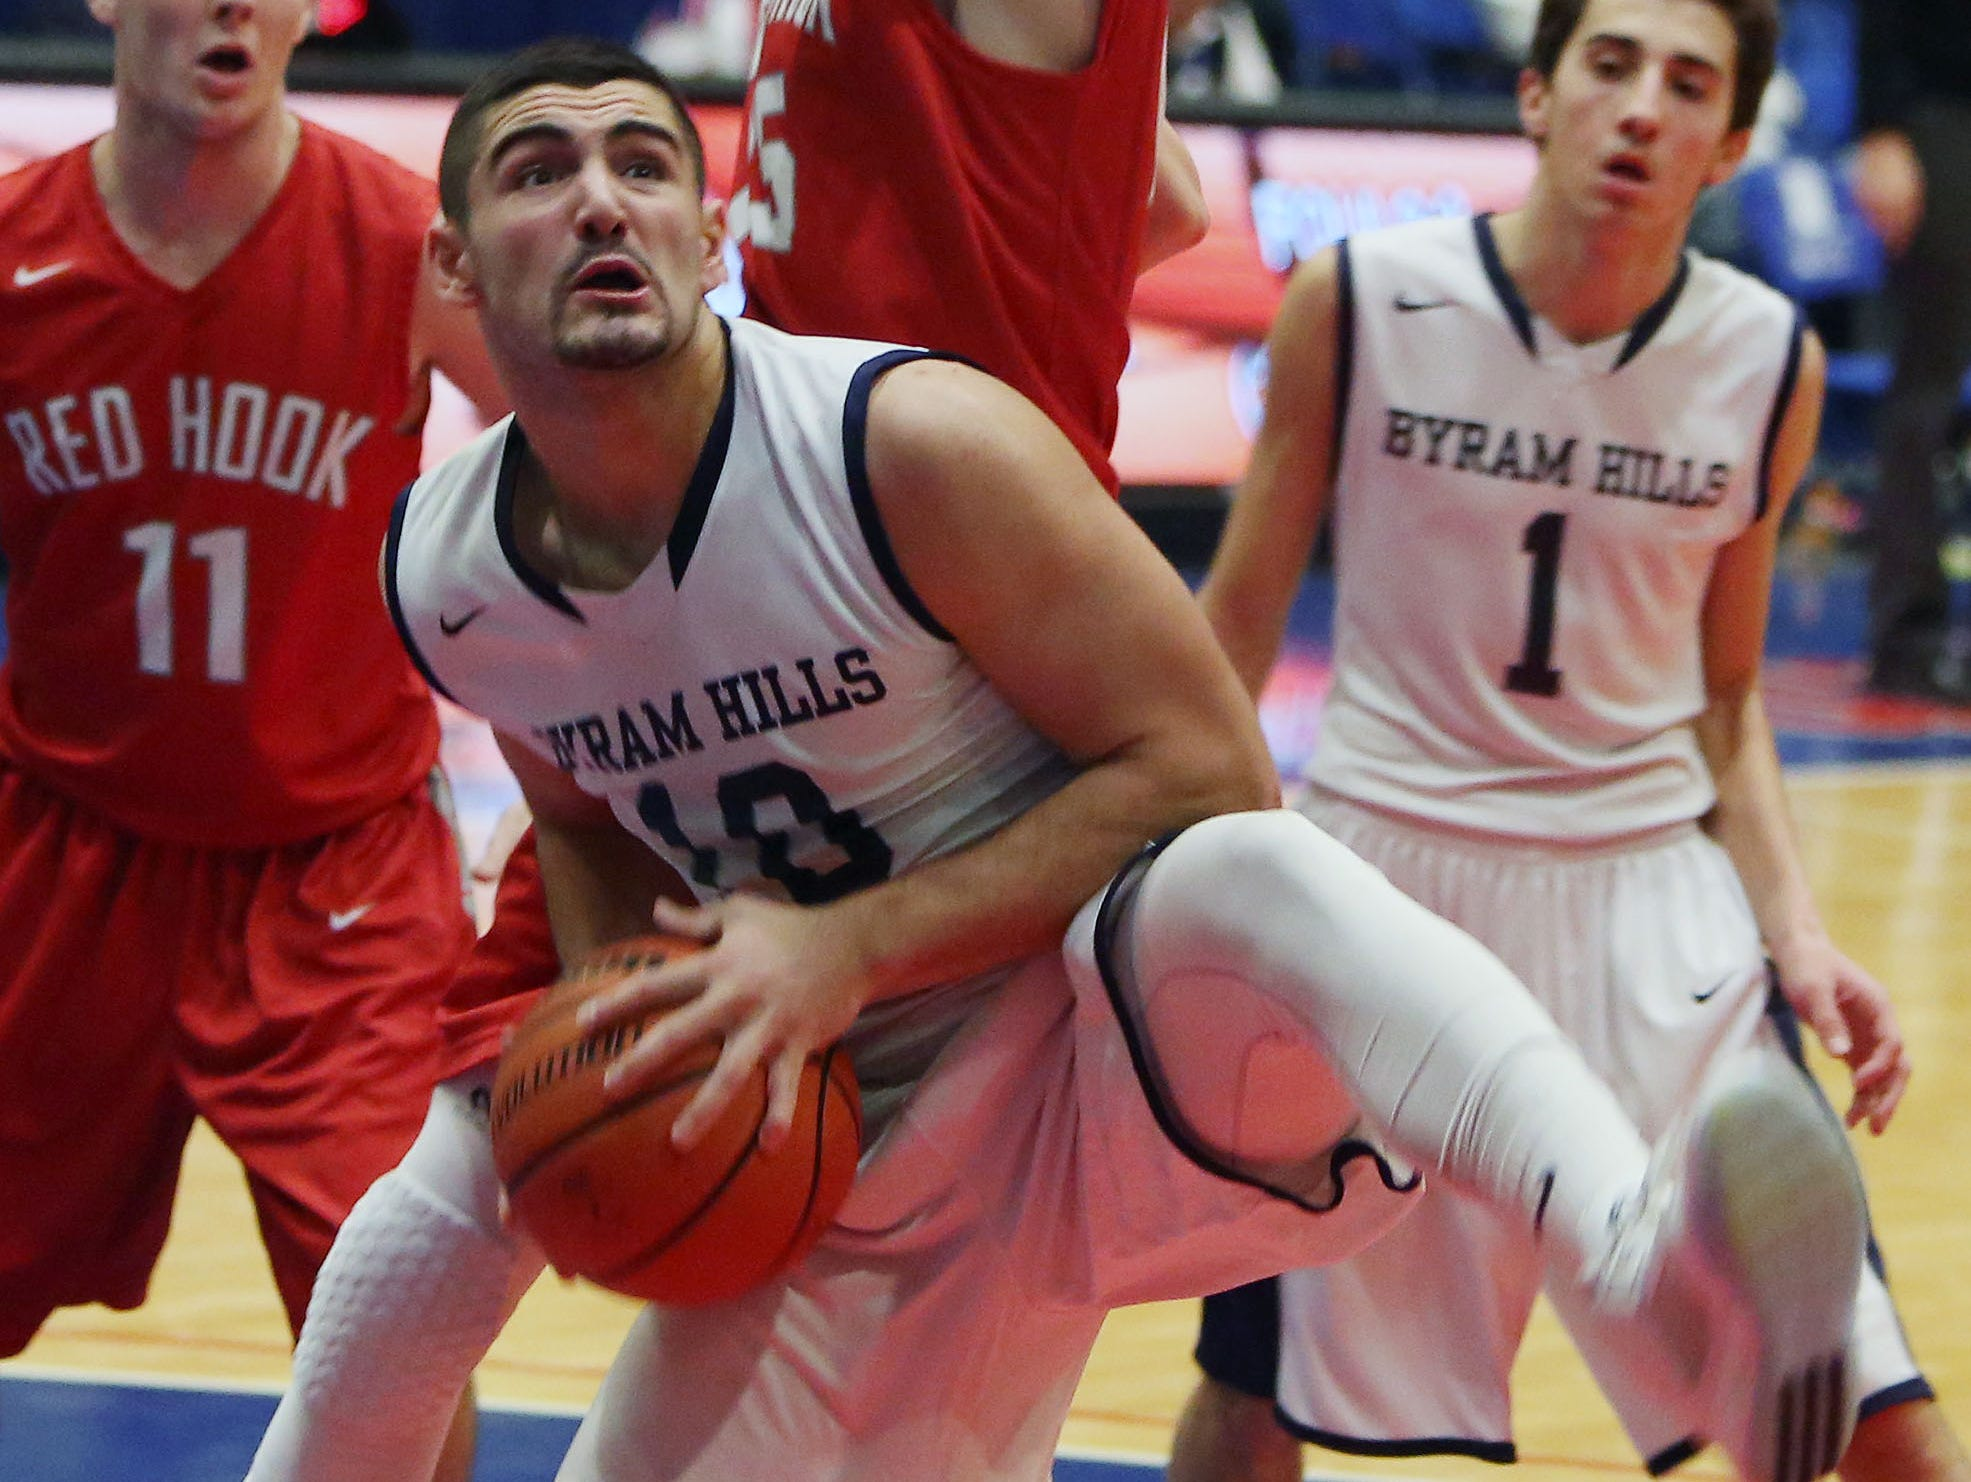 Byram Hills' Louis Filippelli (10) drives to the basket against Red Hook during the boys Class A basketball playoff game at the Westchester County Center in White Plains March. 1, 2016.